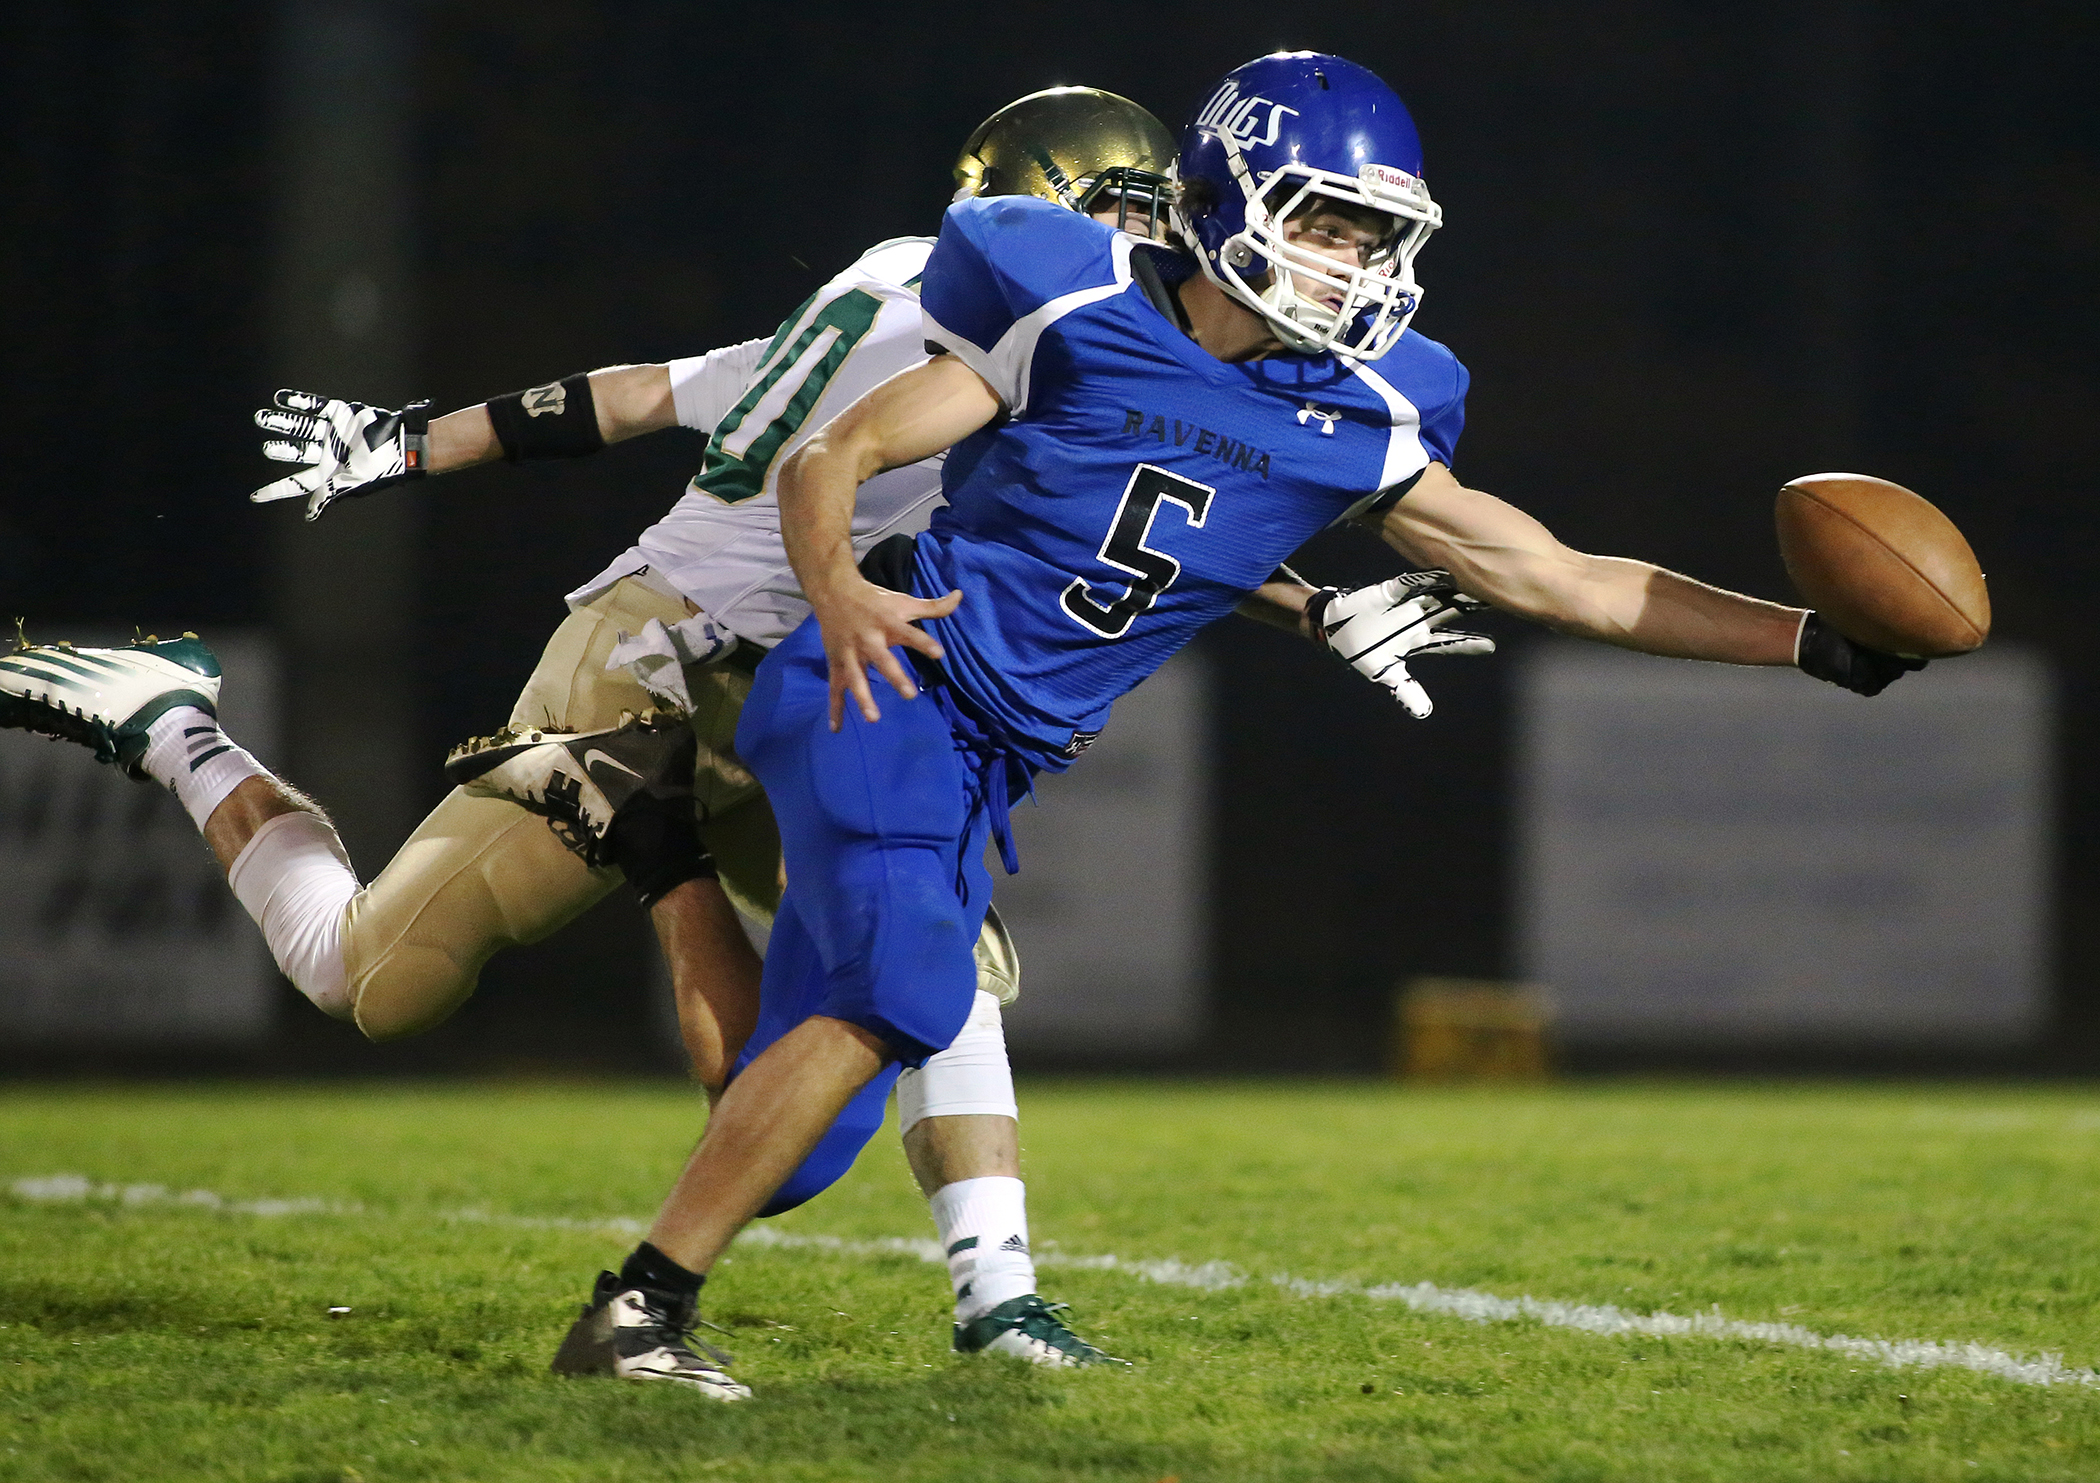 Dakota Hudson (5) of Ravenna attempts to complete a catch on a fourth down while defended by Anthony Woodard of Muskegon Catholic Central in the first quarter of their game in Ravenna on Oct. 24, 2014. The play was not completed and turned over to MCC. Muskegon Catholic Central won 45-0.